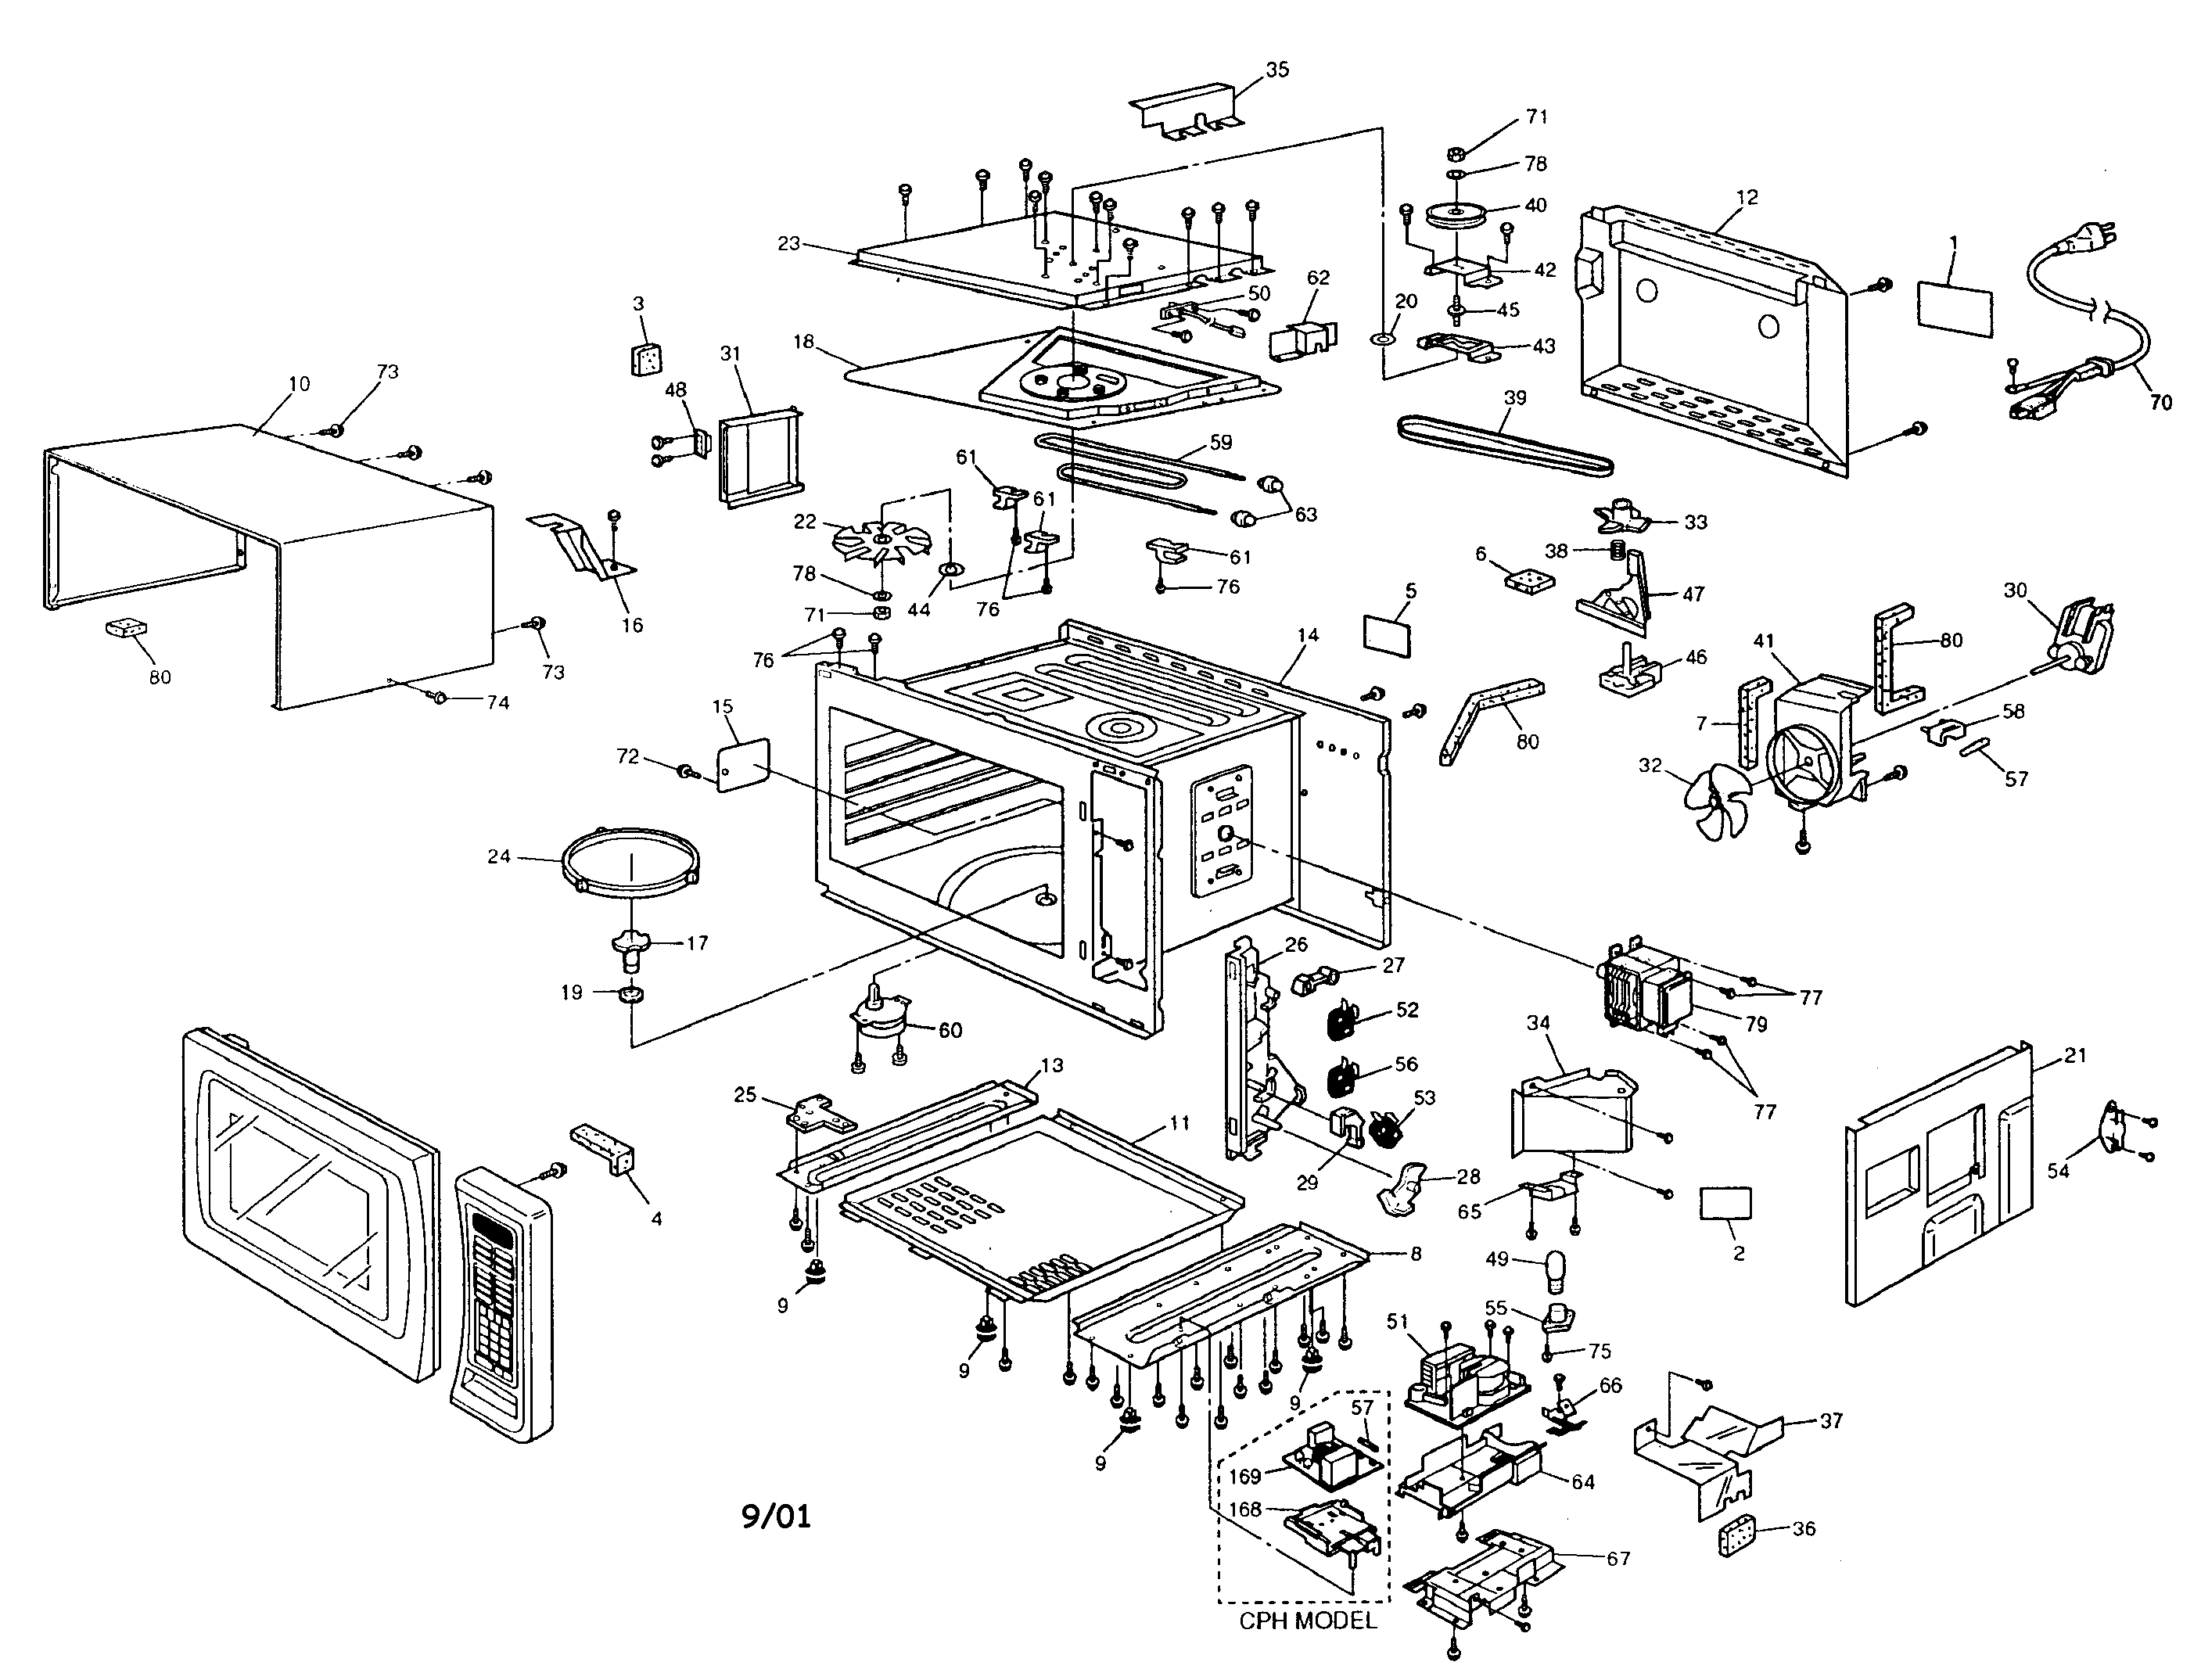 Panasonic Microwave Parts Diagram Samsung Microwave Parts